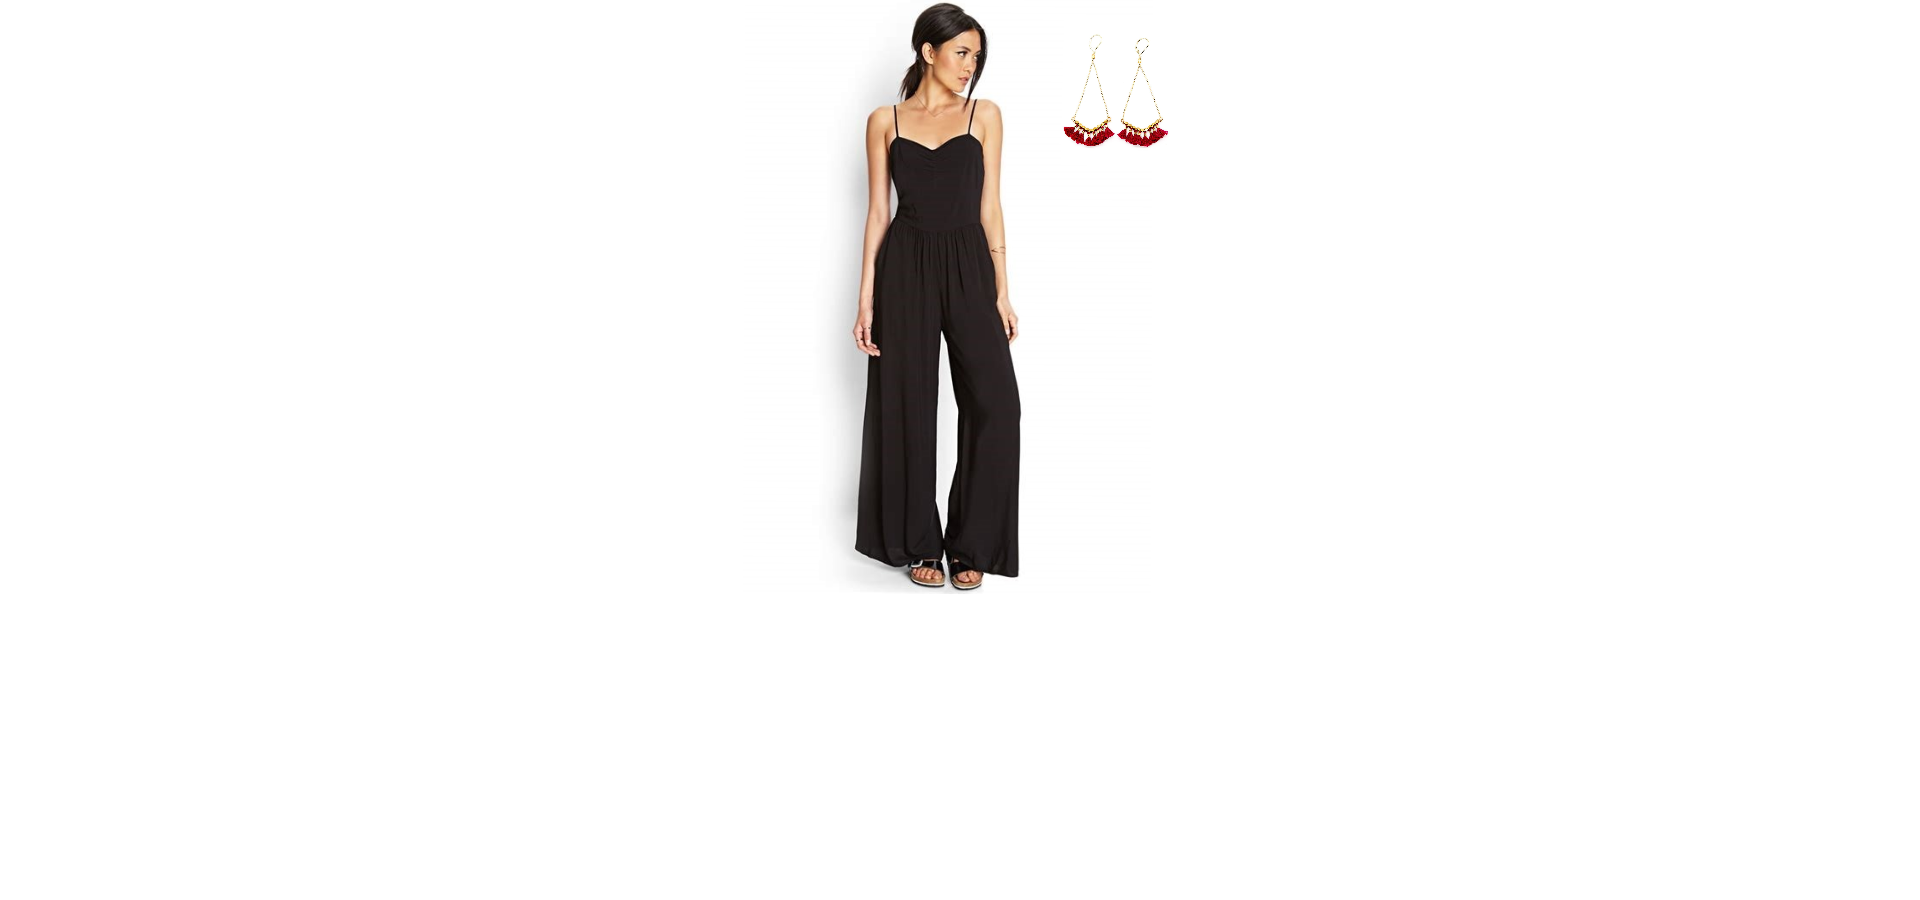 This jumpsuit is great for showing off the slender upper body and concealing the hips to create a harmonious figure.